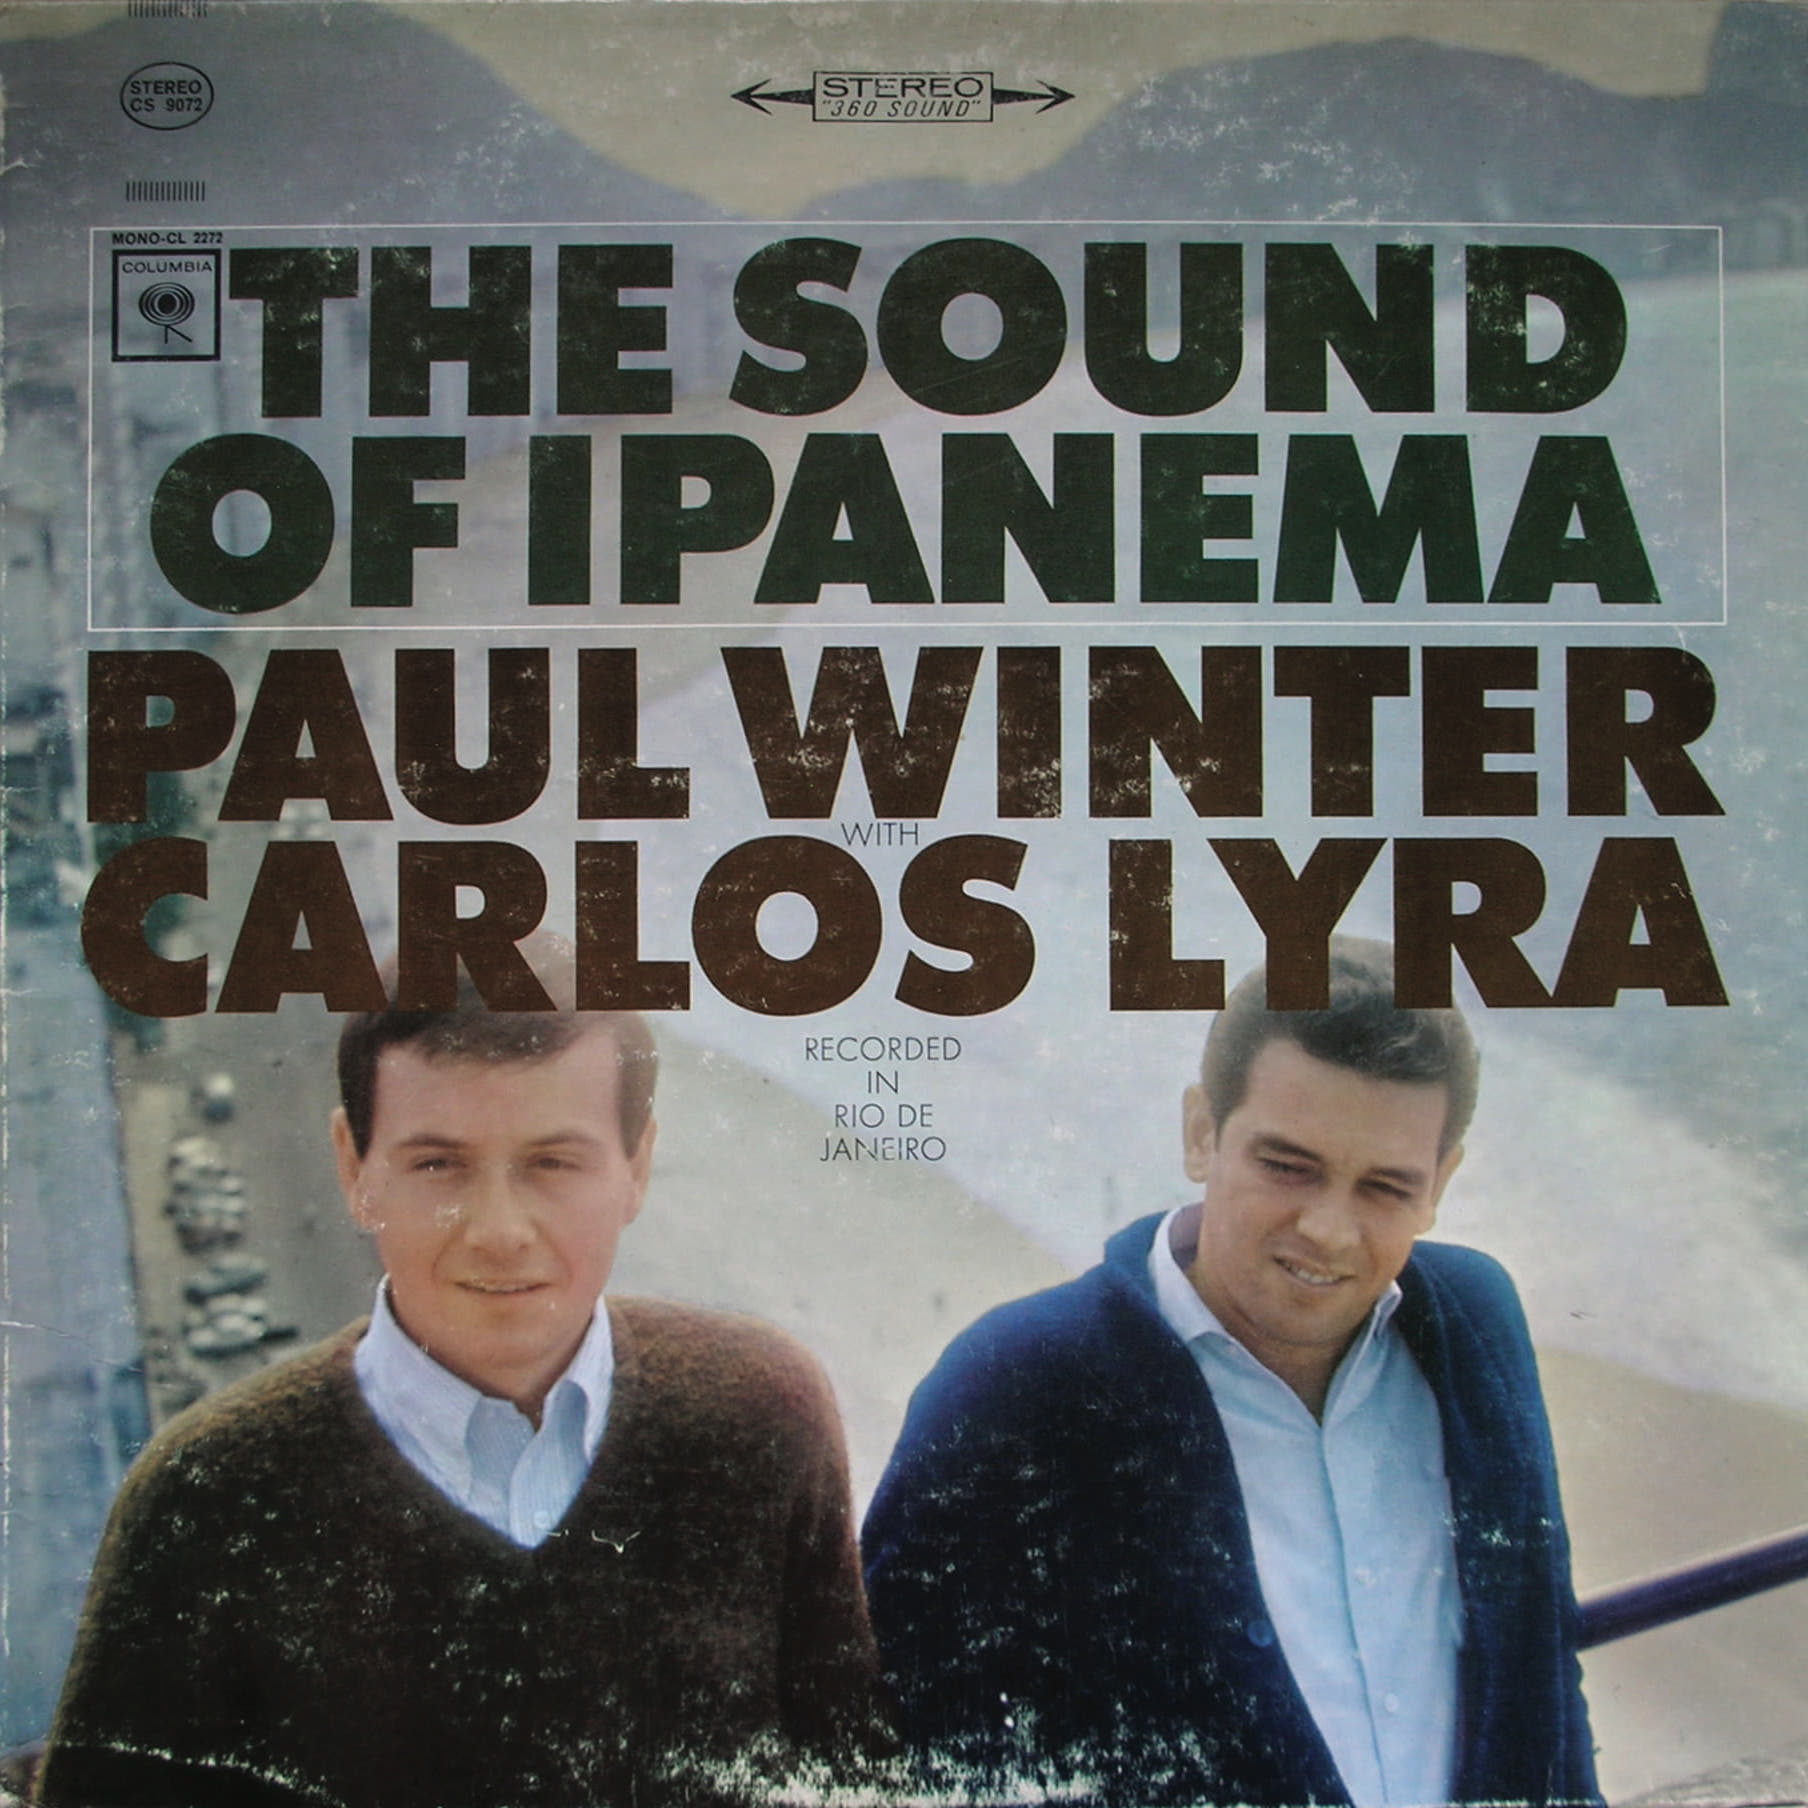 Paul Winter & Carlos Lyra <i>The Sound of Ipanema</i>